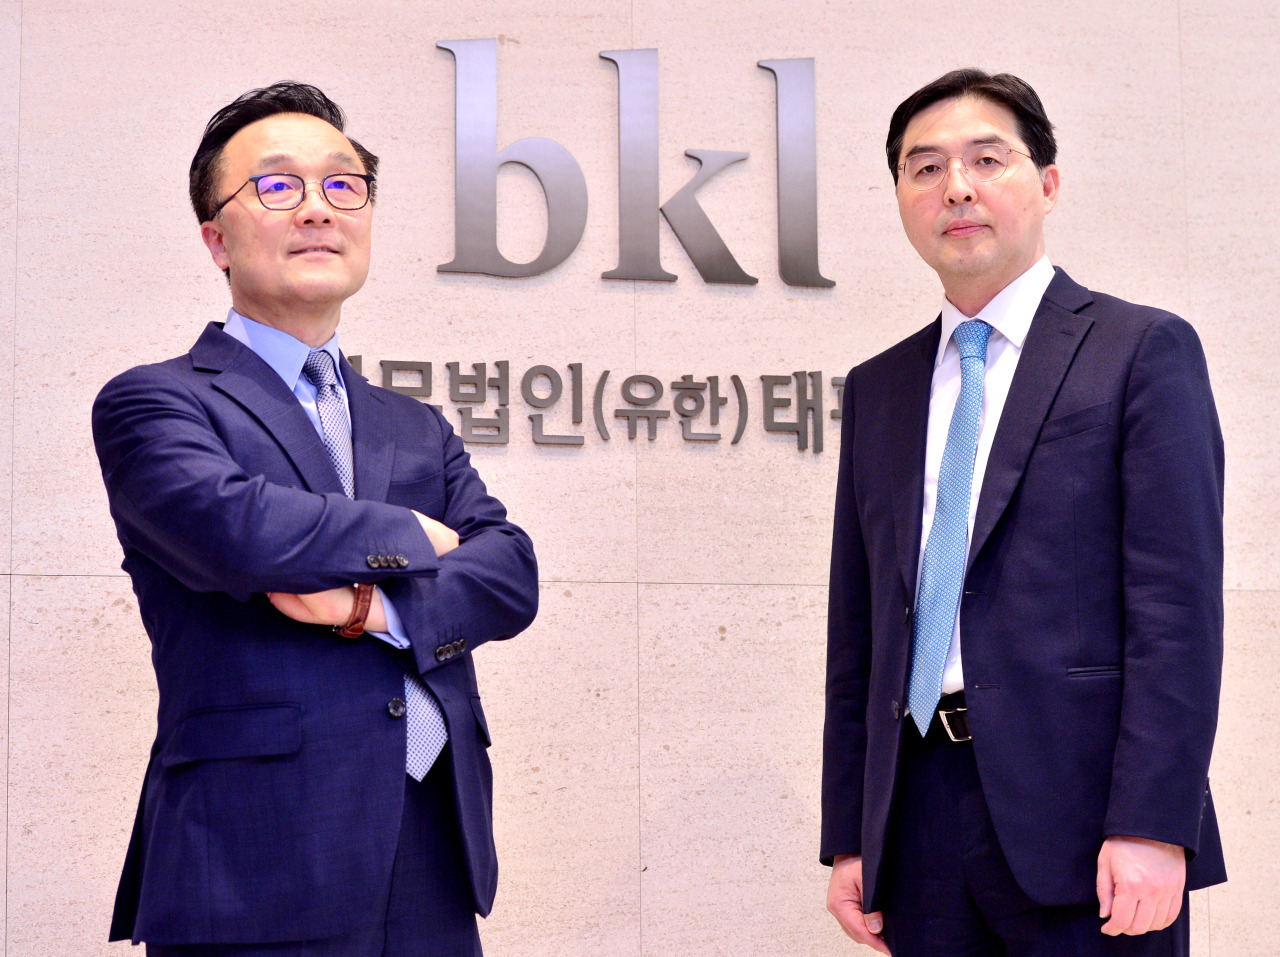 Bae, Kim & Lee managing partners Sky Yang (left) and Choi Seung-jin pose for a photo during an interview at the firm's headquarters in central Seoul. (Park Hyun-koo/The Korea Herald)